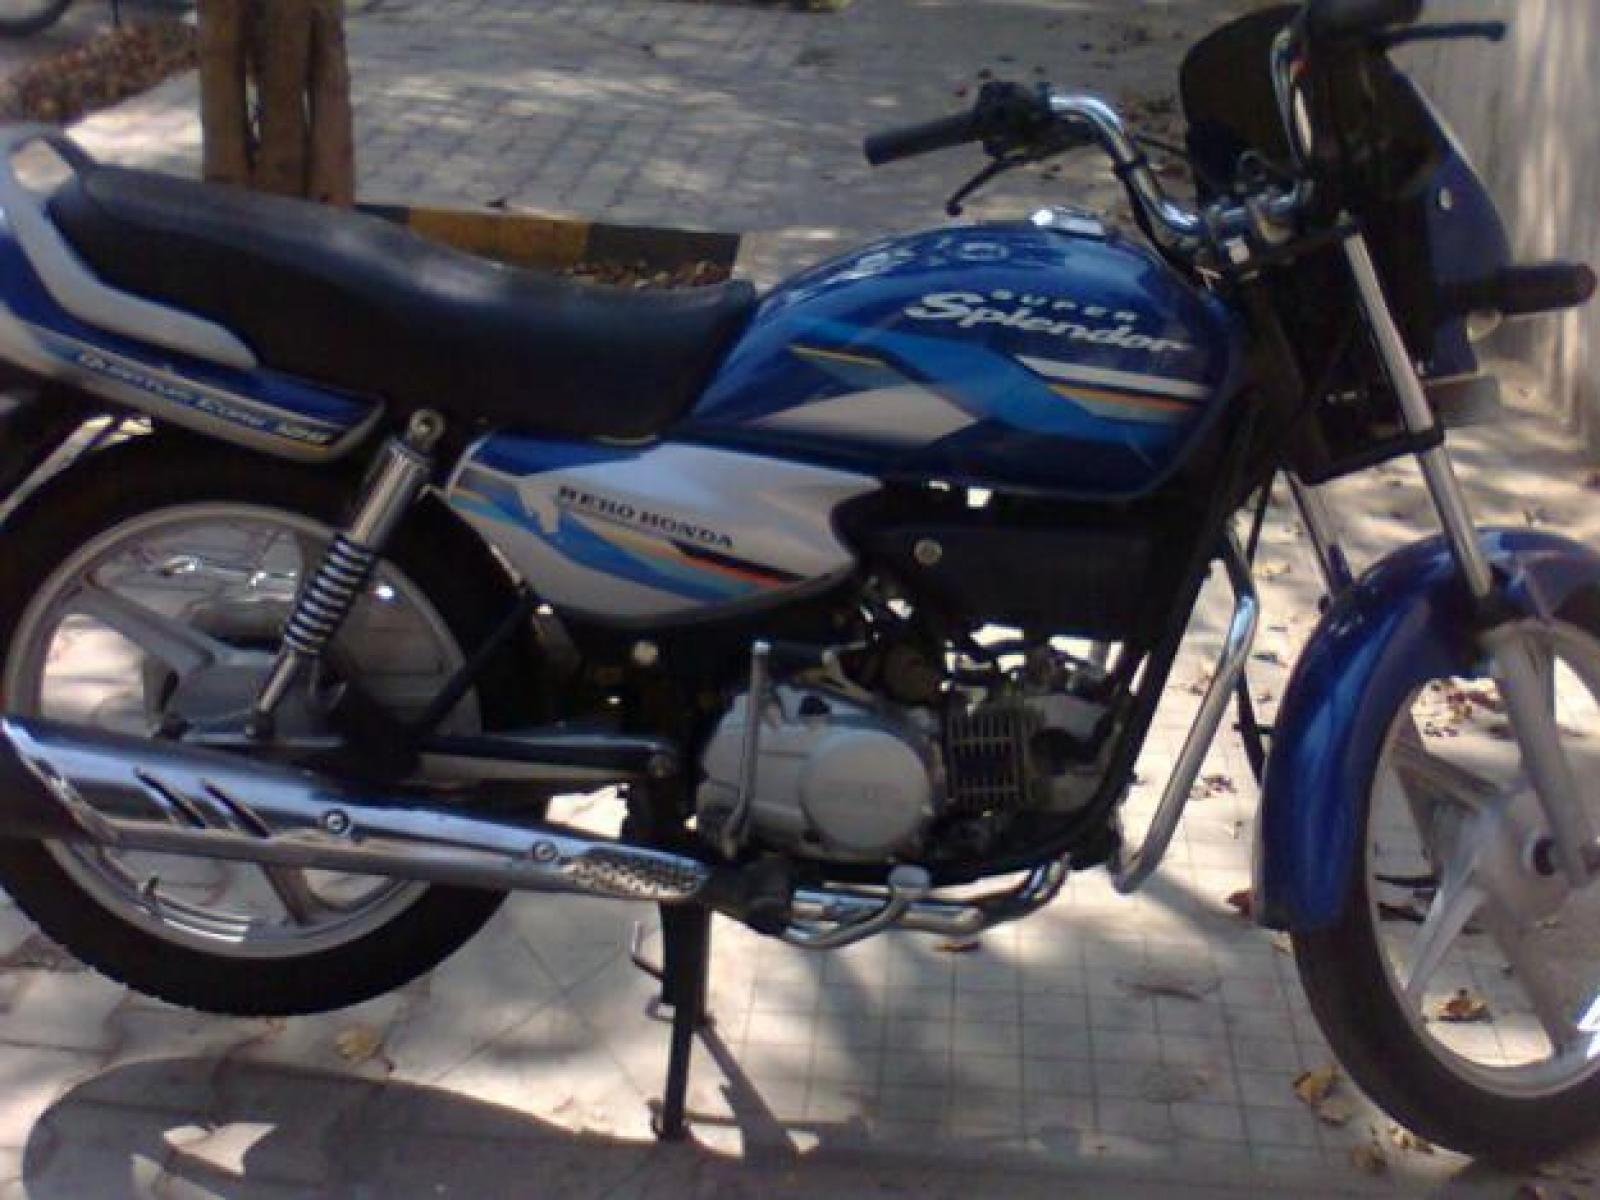 Hero Honda Splendor 2007 images #95886